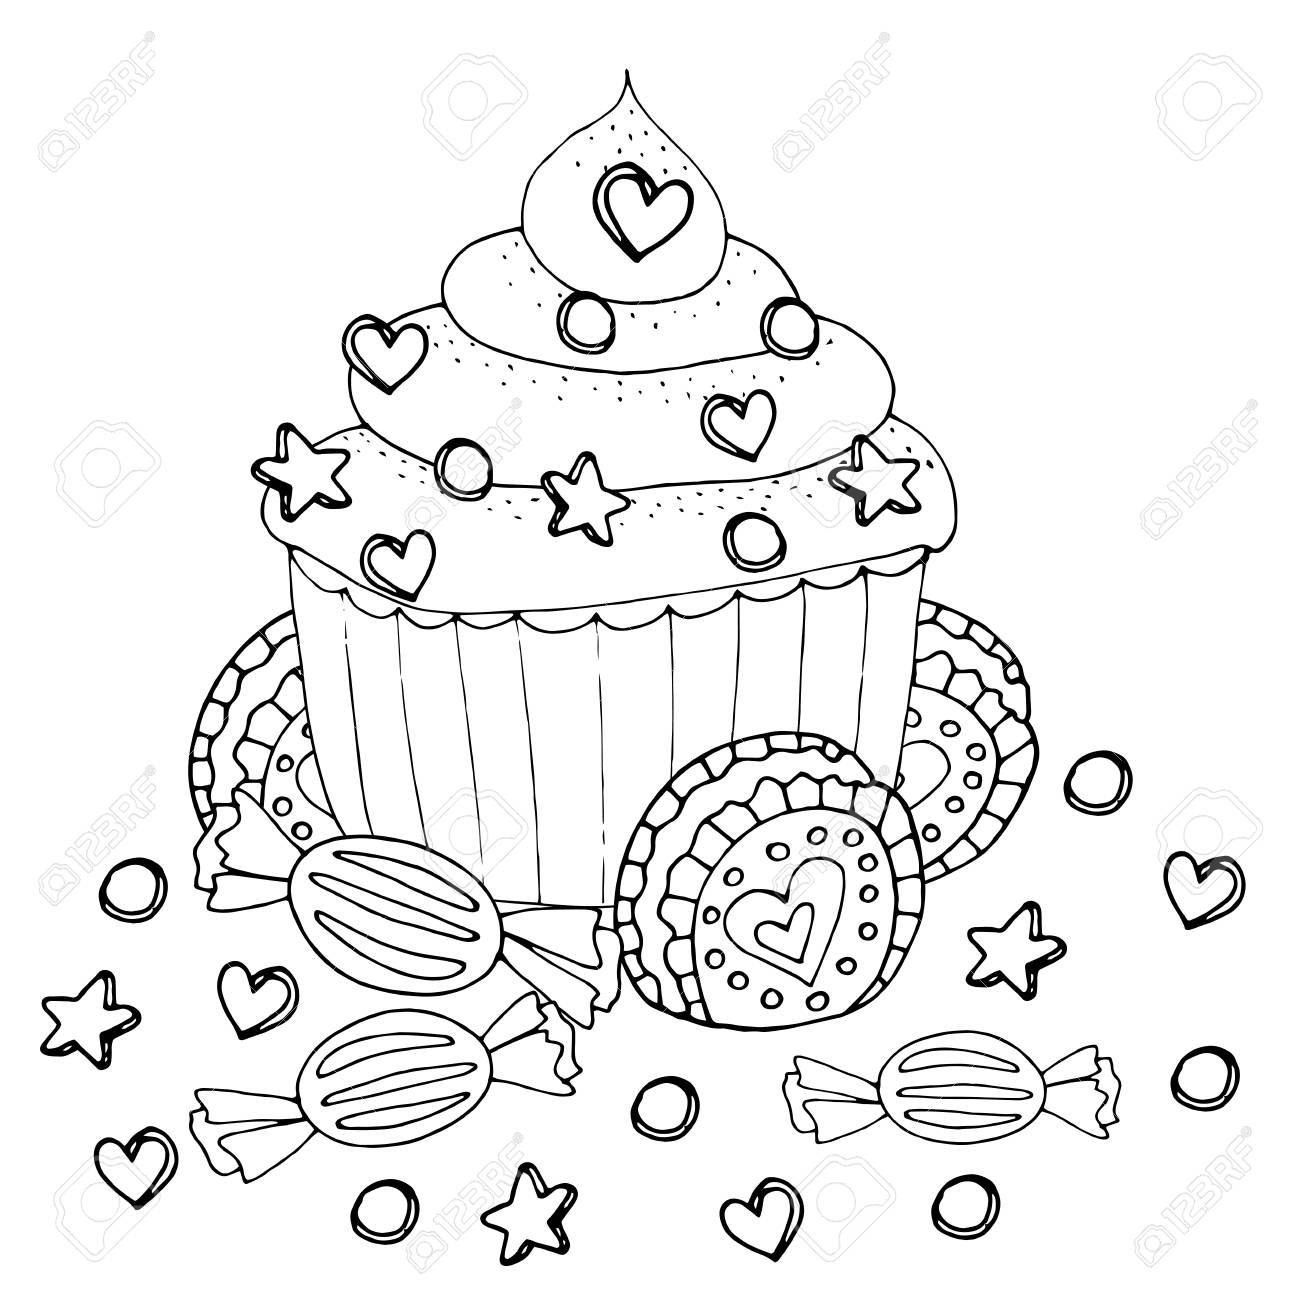 Coloring Page With Cake Cupcake Candy And Other Dessert Sweet Royalty Free Cliparts Vectors And Stock Illustration Image 125210826